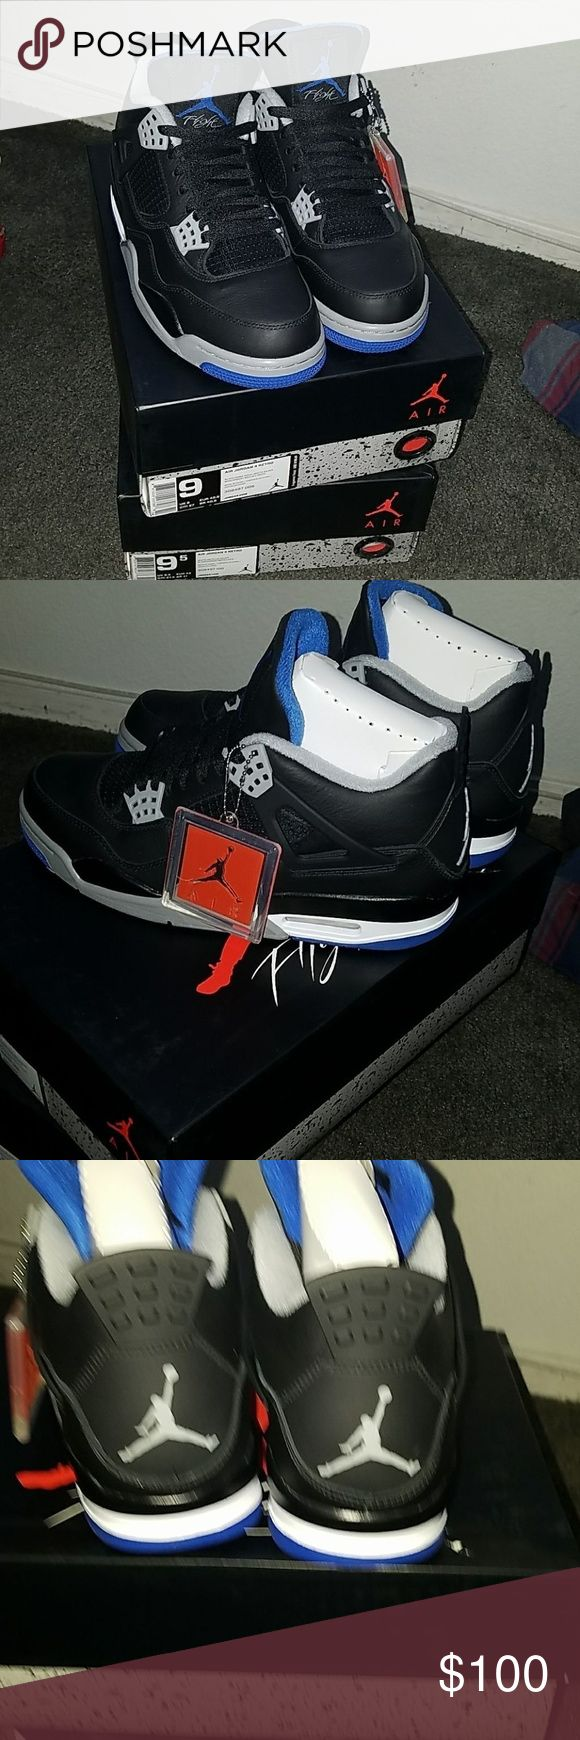 Jordan 4 motorsport Text me if interested (702) 763-6776 comes with receipt and all Jordan Shoes Sneakers